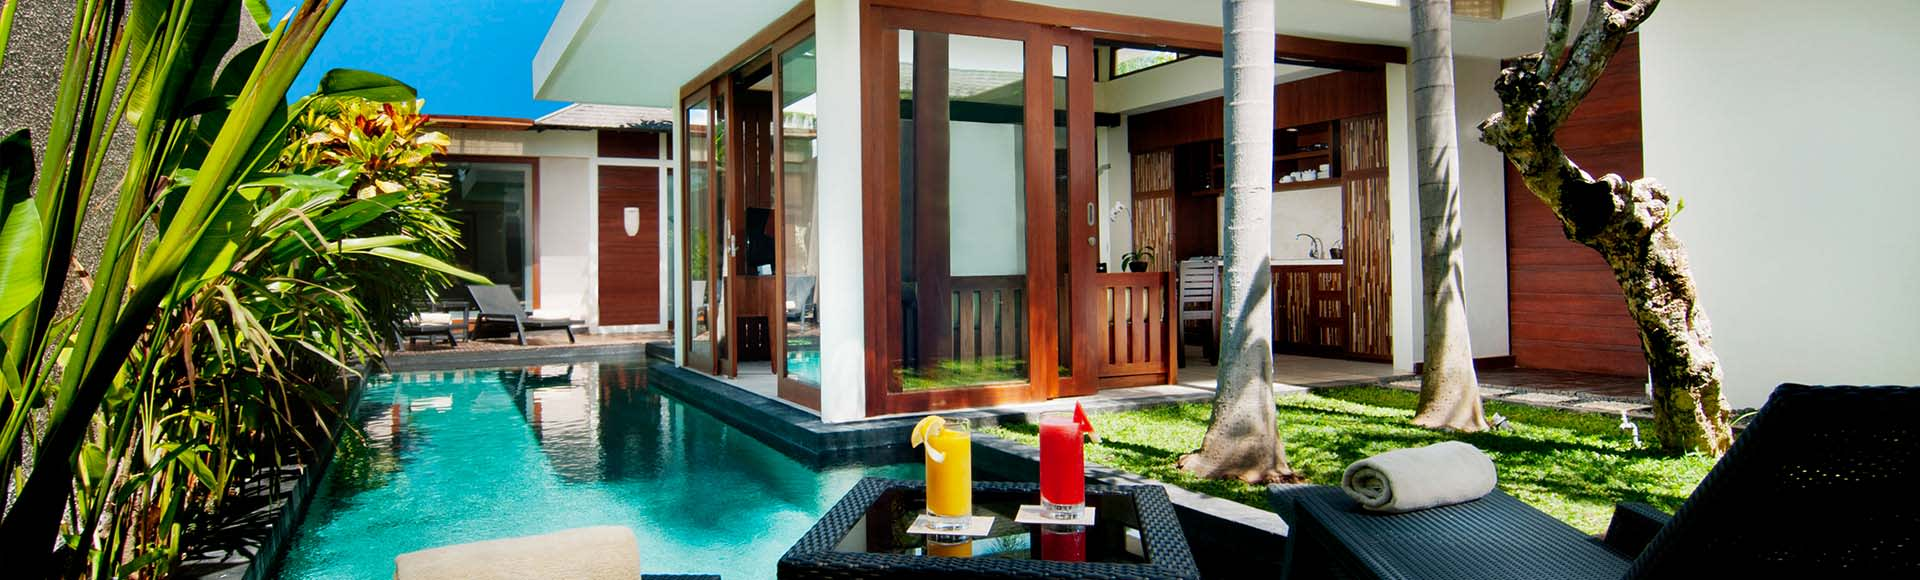 Two Bedroom Pool Villa at Avani Seminyak Bali Resort